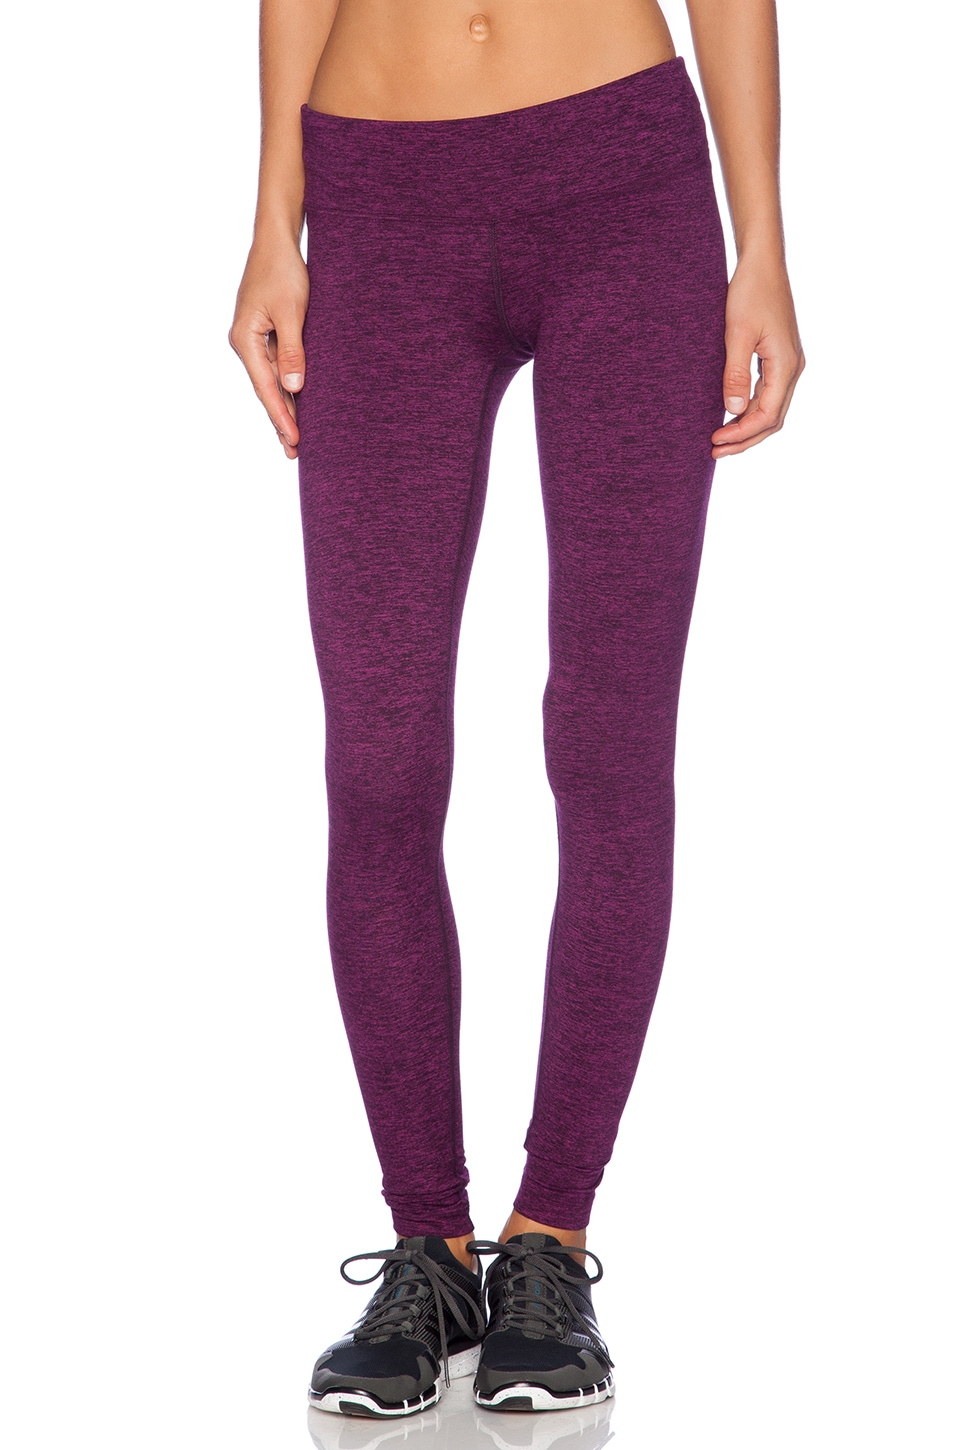 Koral Expedition Legging In Punch Amethyst Revolve Pants